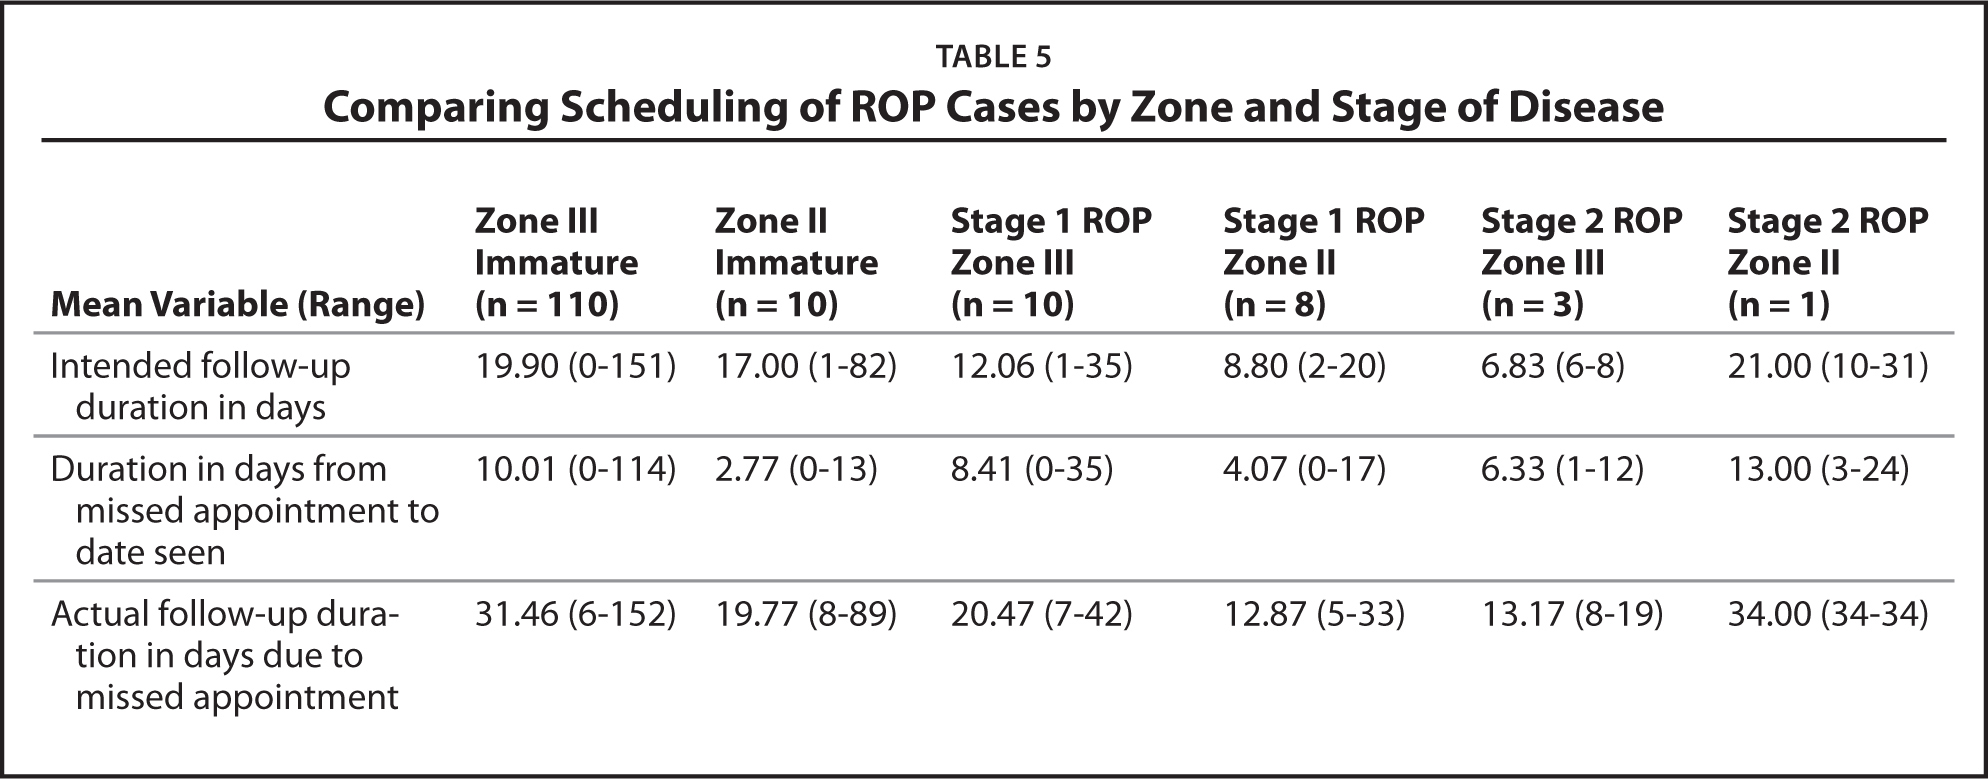 Comparing Scheduling of ROP Cases by Zone and Stage of Disease